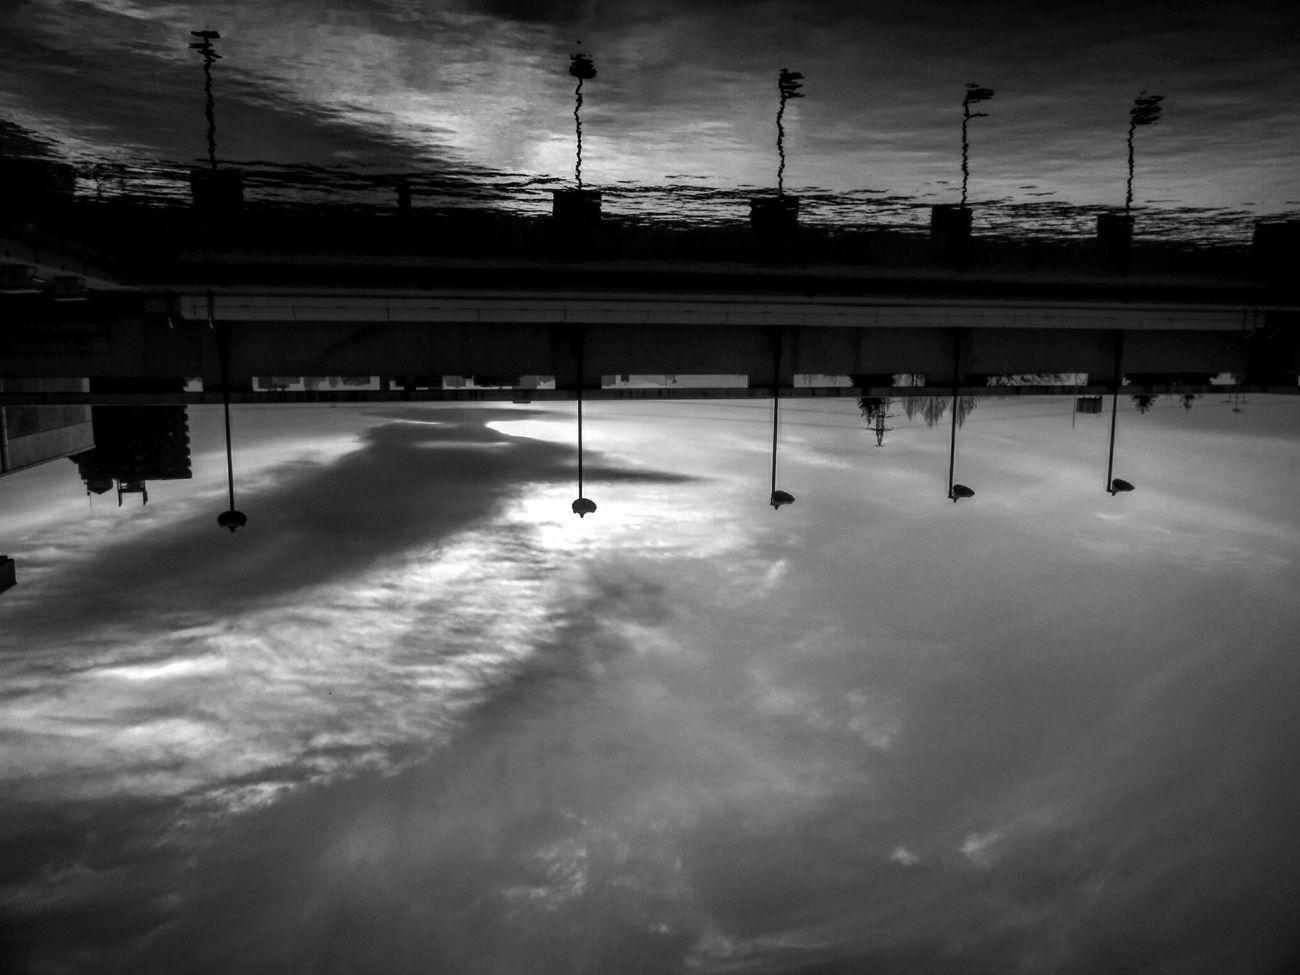 さかさま 逆さま モノクロ モノクローム 空 雲 太陽 水 シルエット Silhouette Sun Cloud Clouds And Sky Black & White Monochrome Black&white Clouds Black And White Sky Water